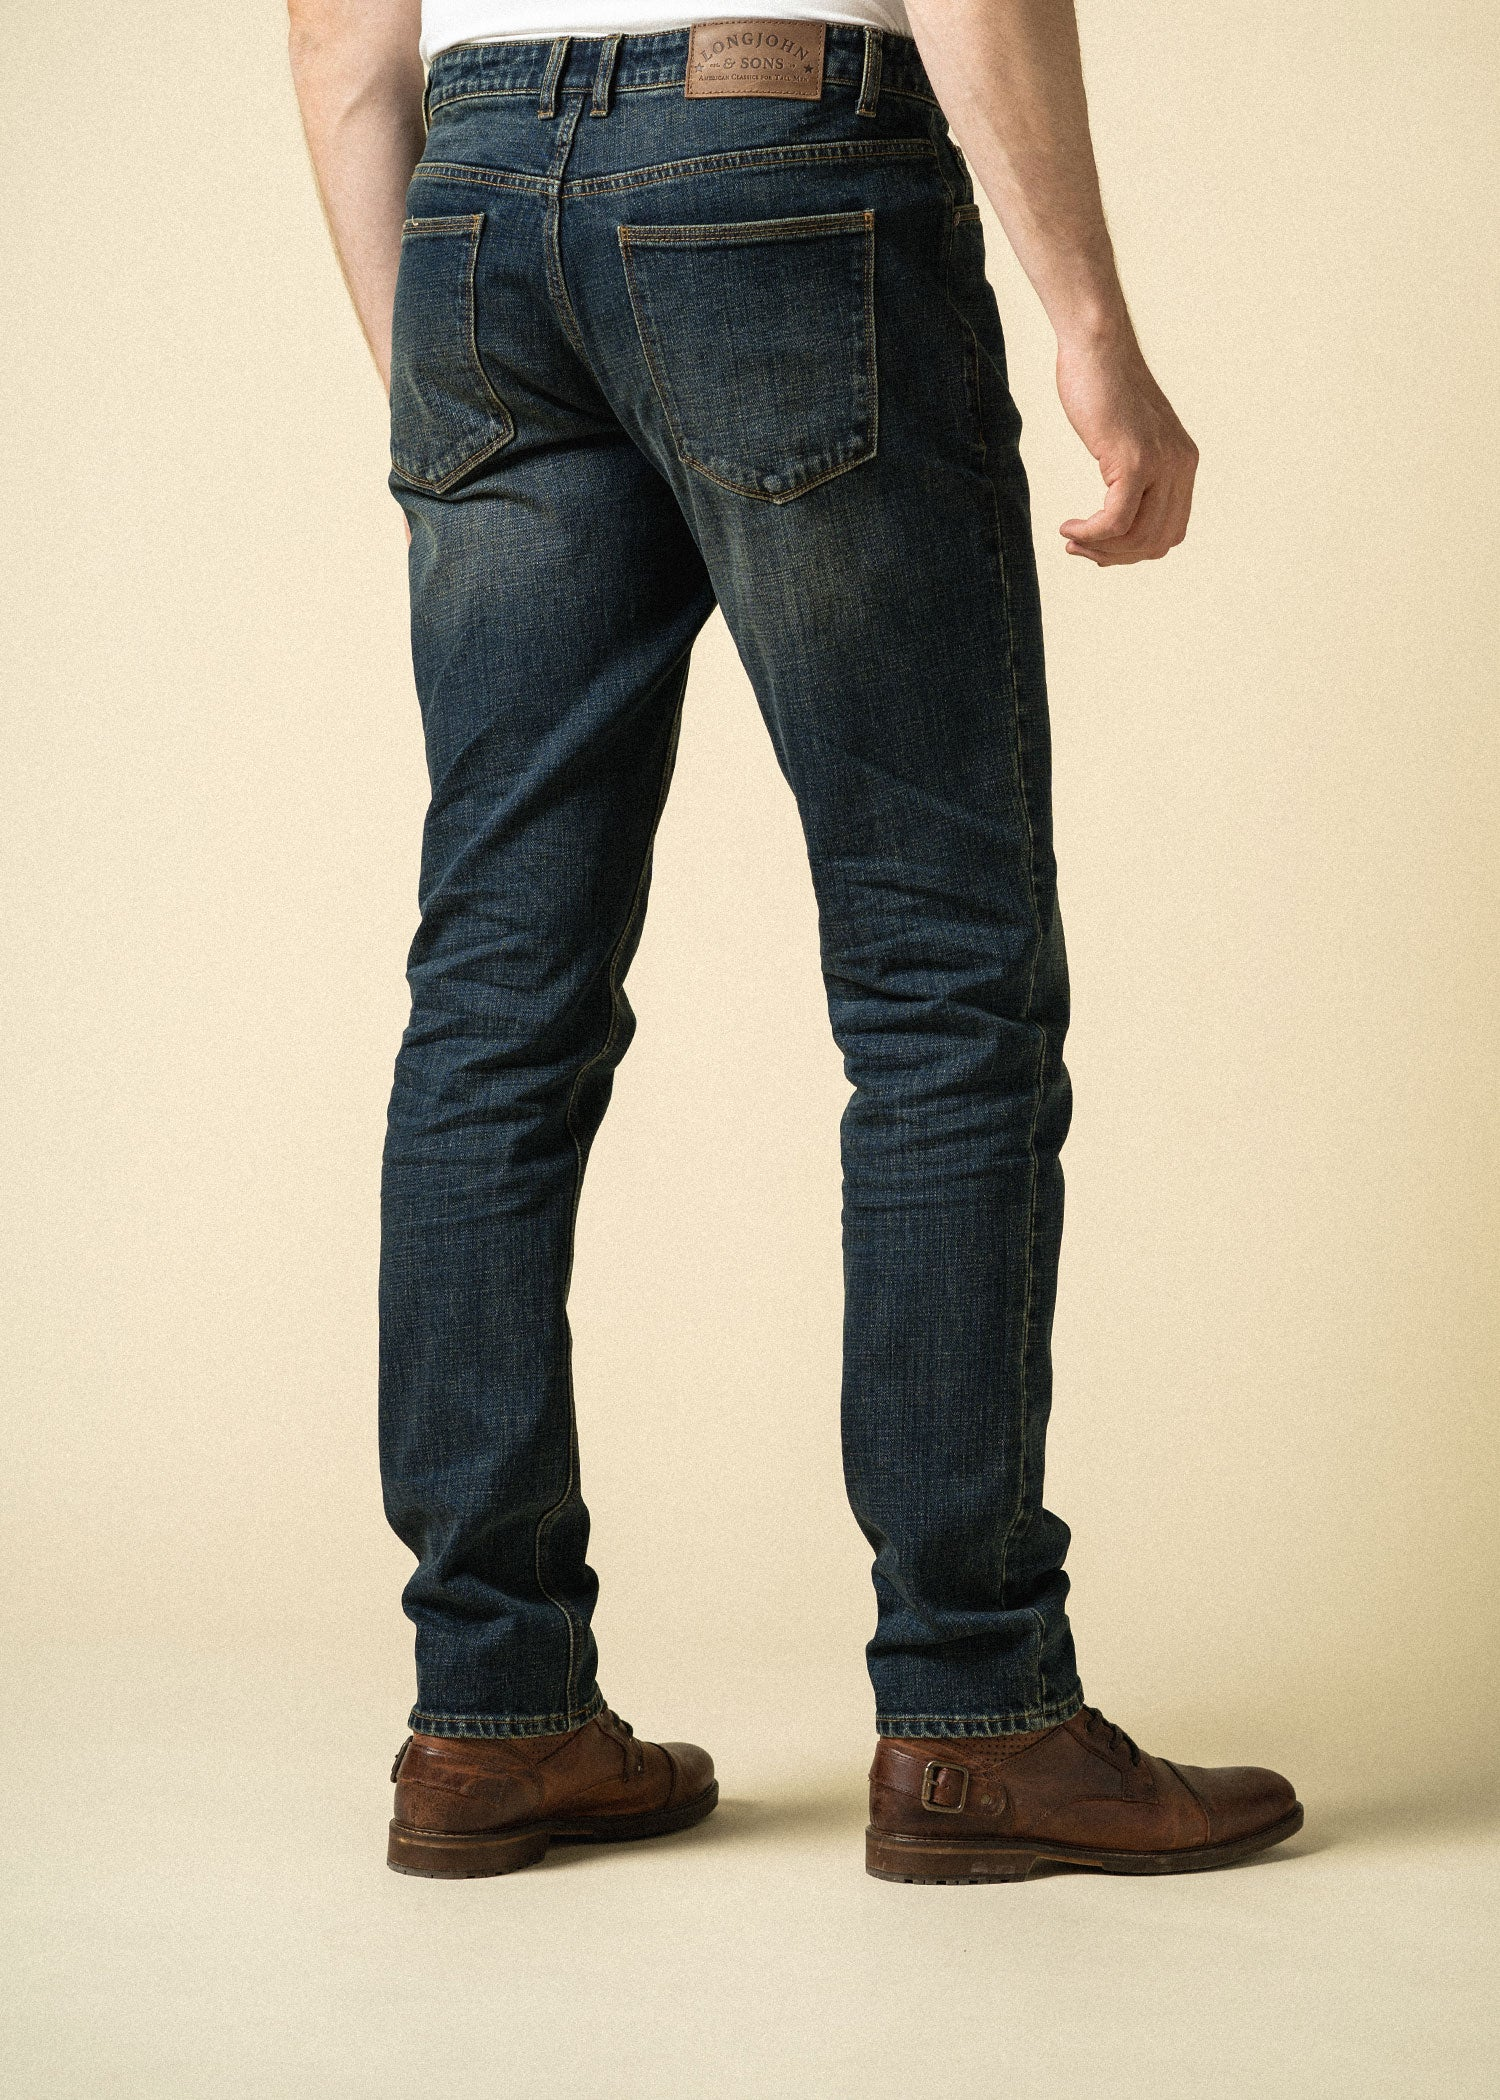 longjohnandsons-tallmen-carmanjeans-mechanic-back